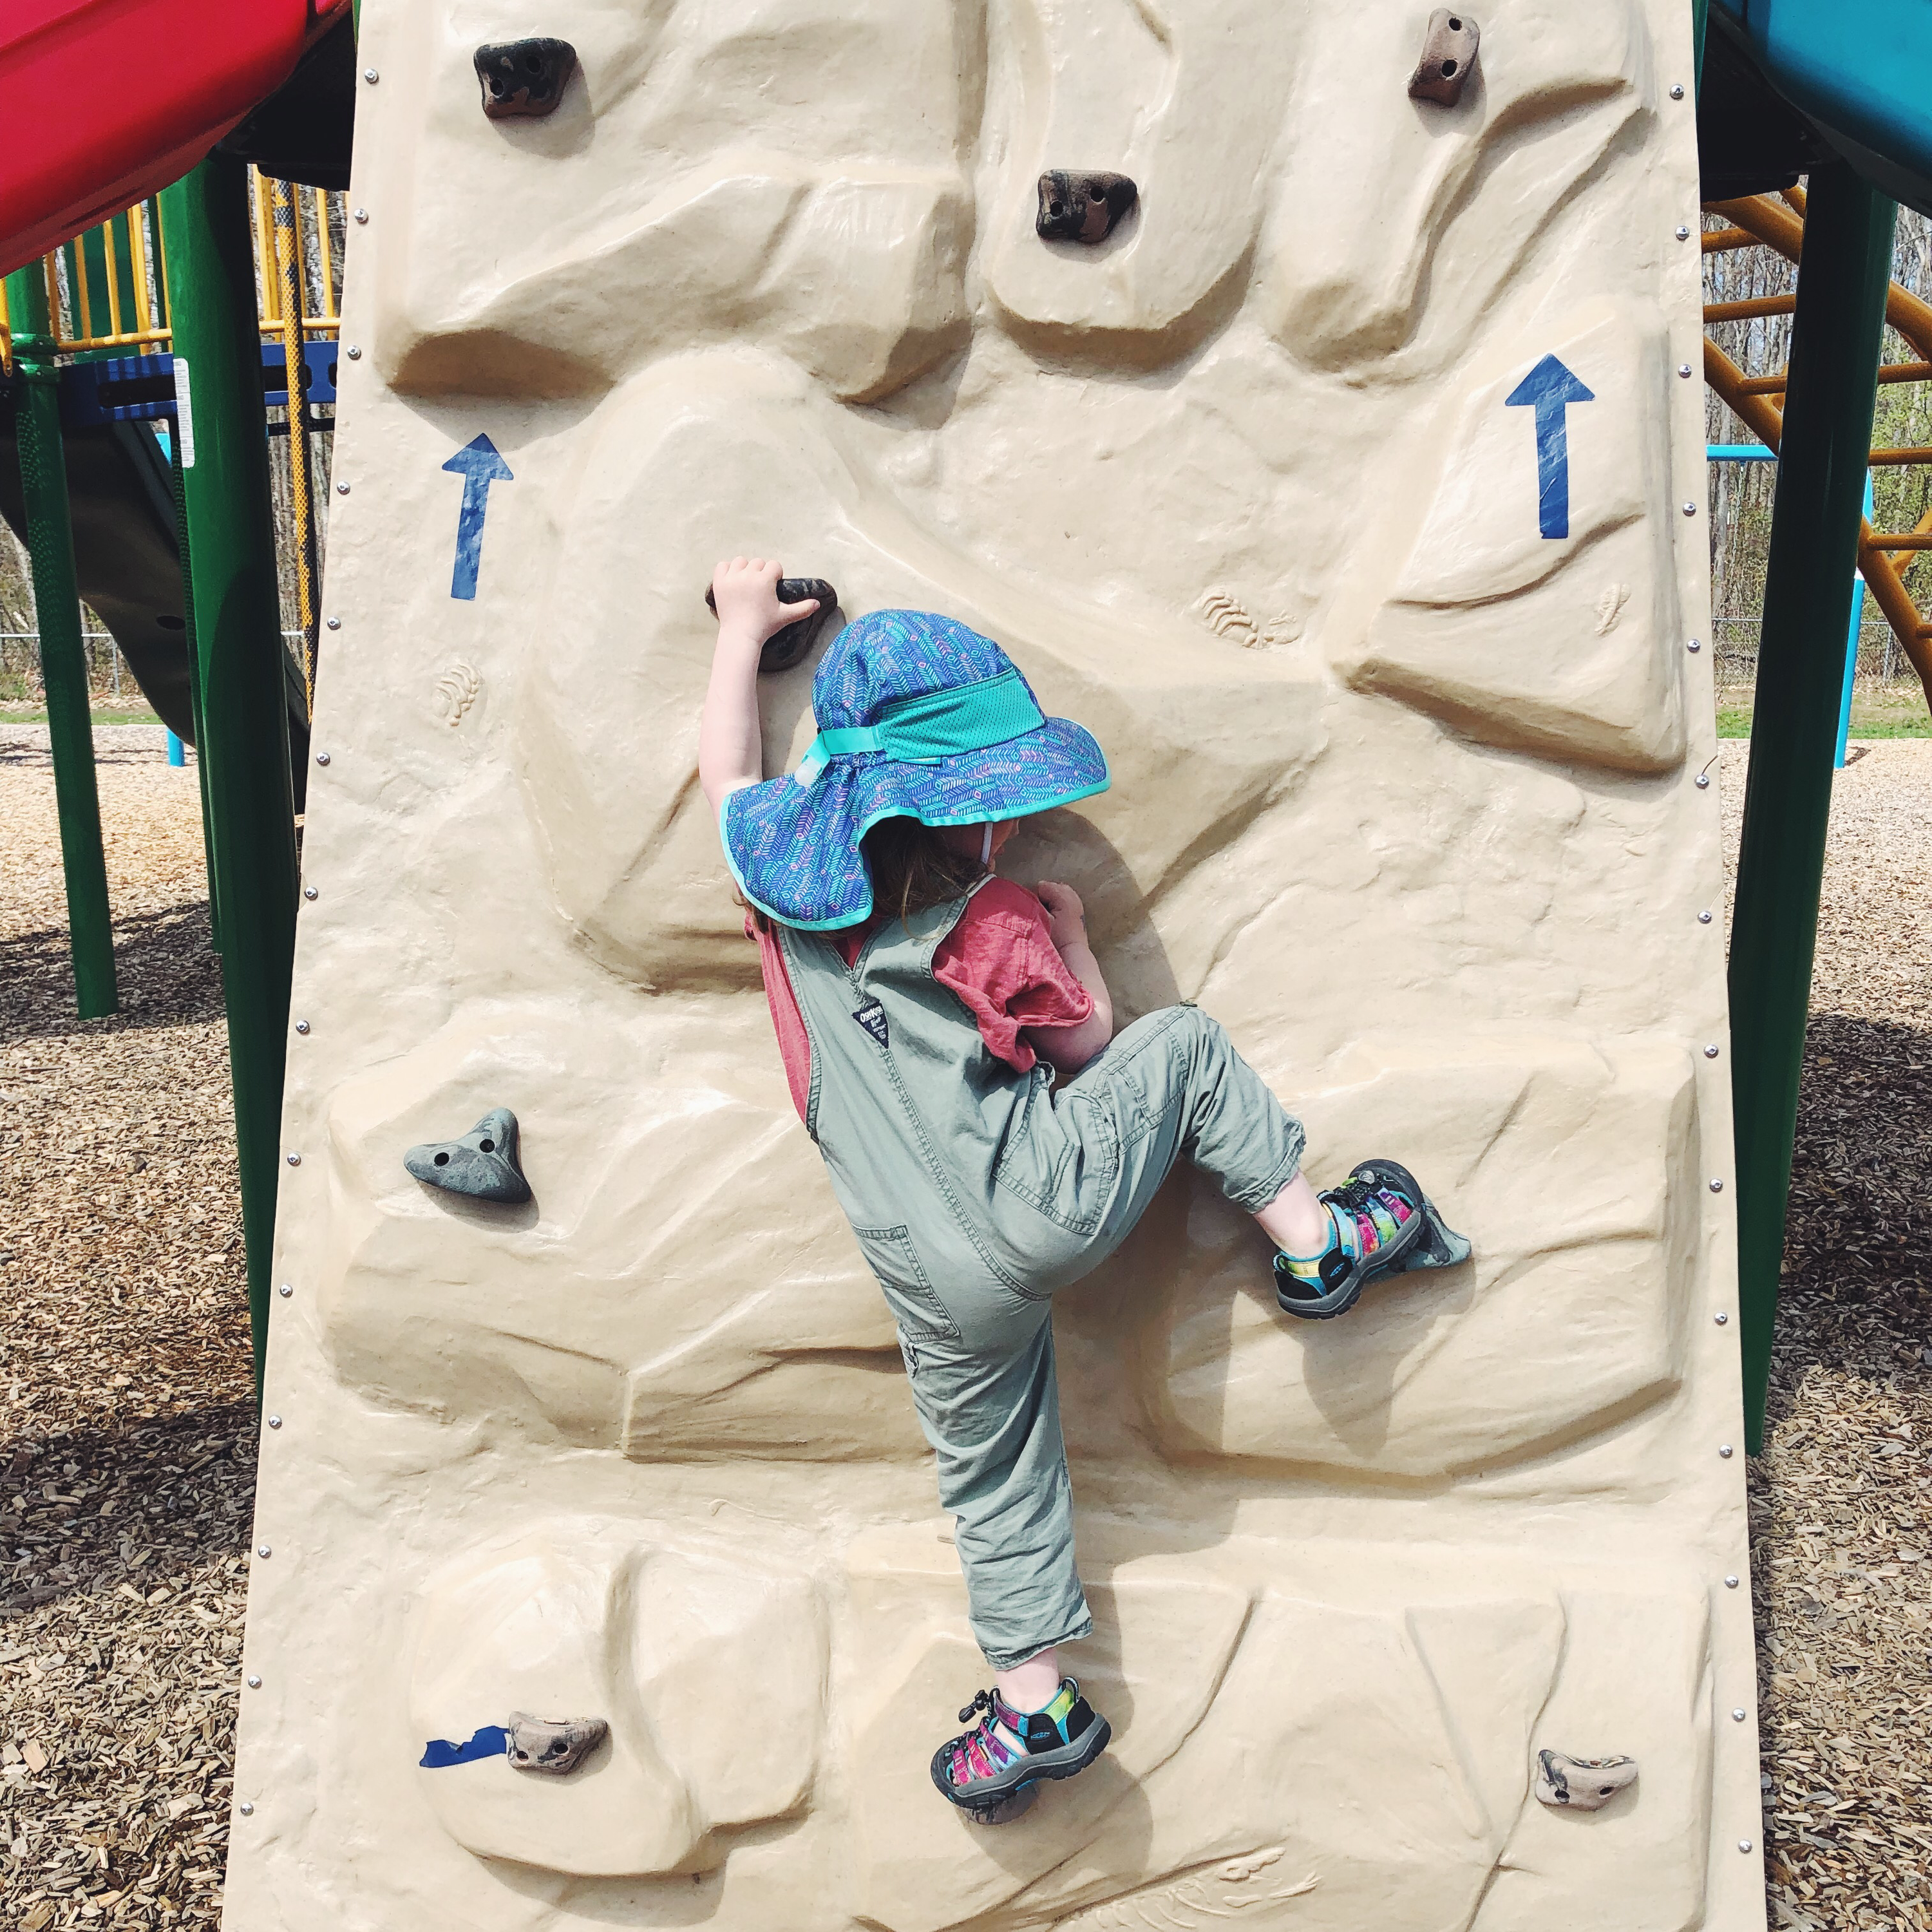 A child in a large, purple, floppy sun hat climbs a wall at a playground.